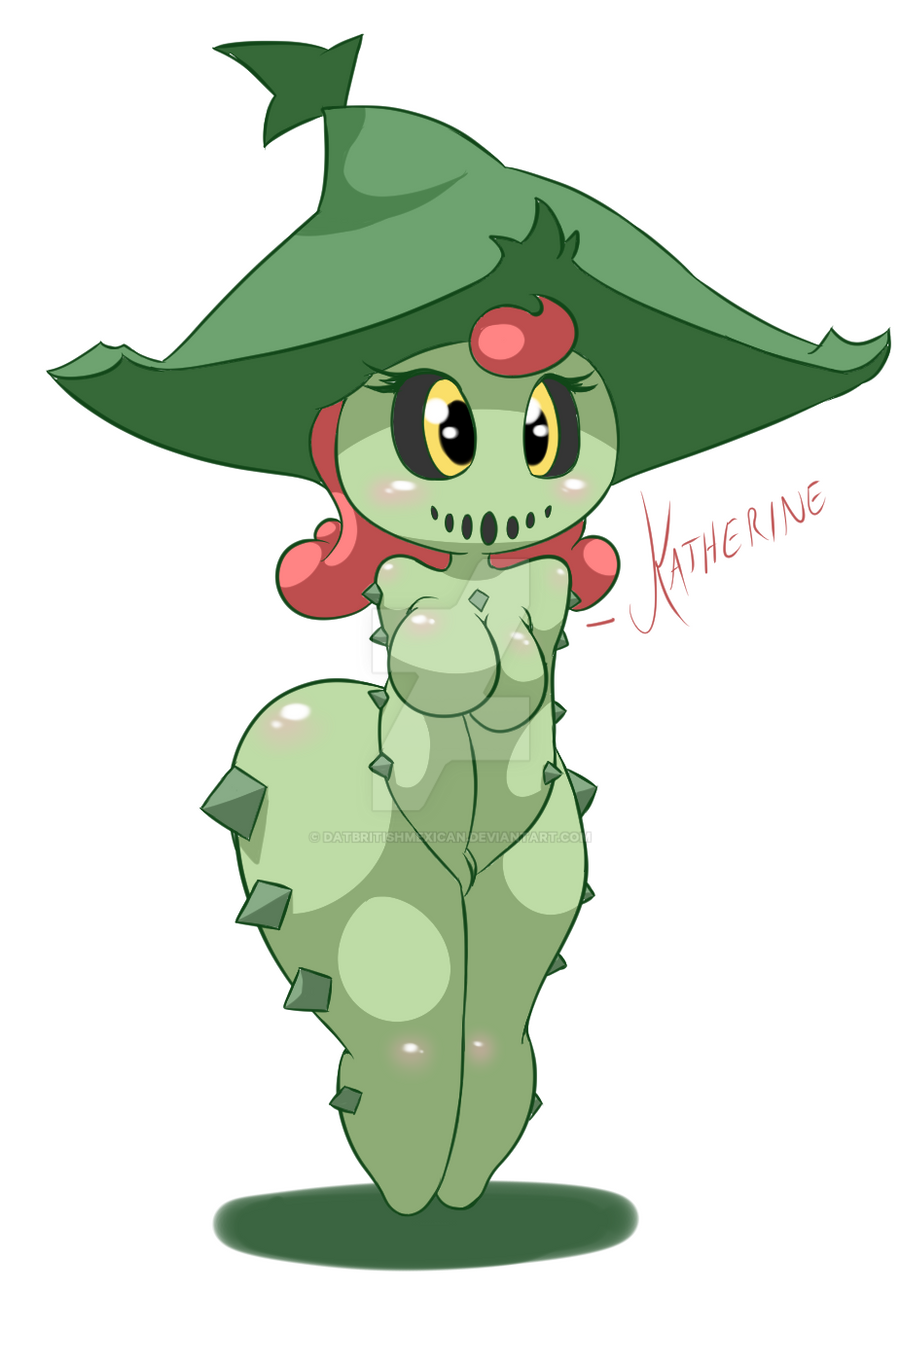 Katherine the Cacturne by DatBritishMexican on DeviantArt